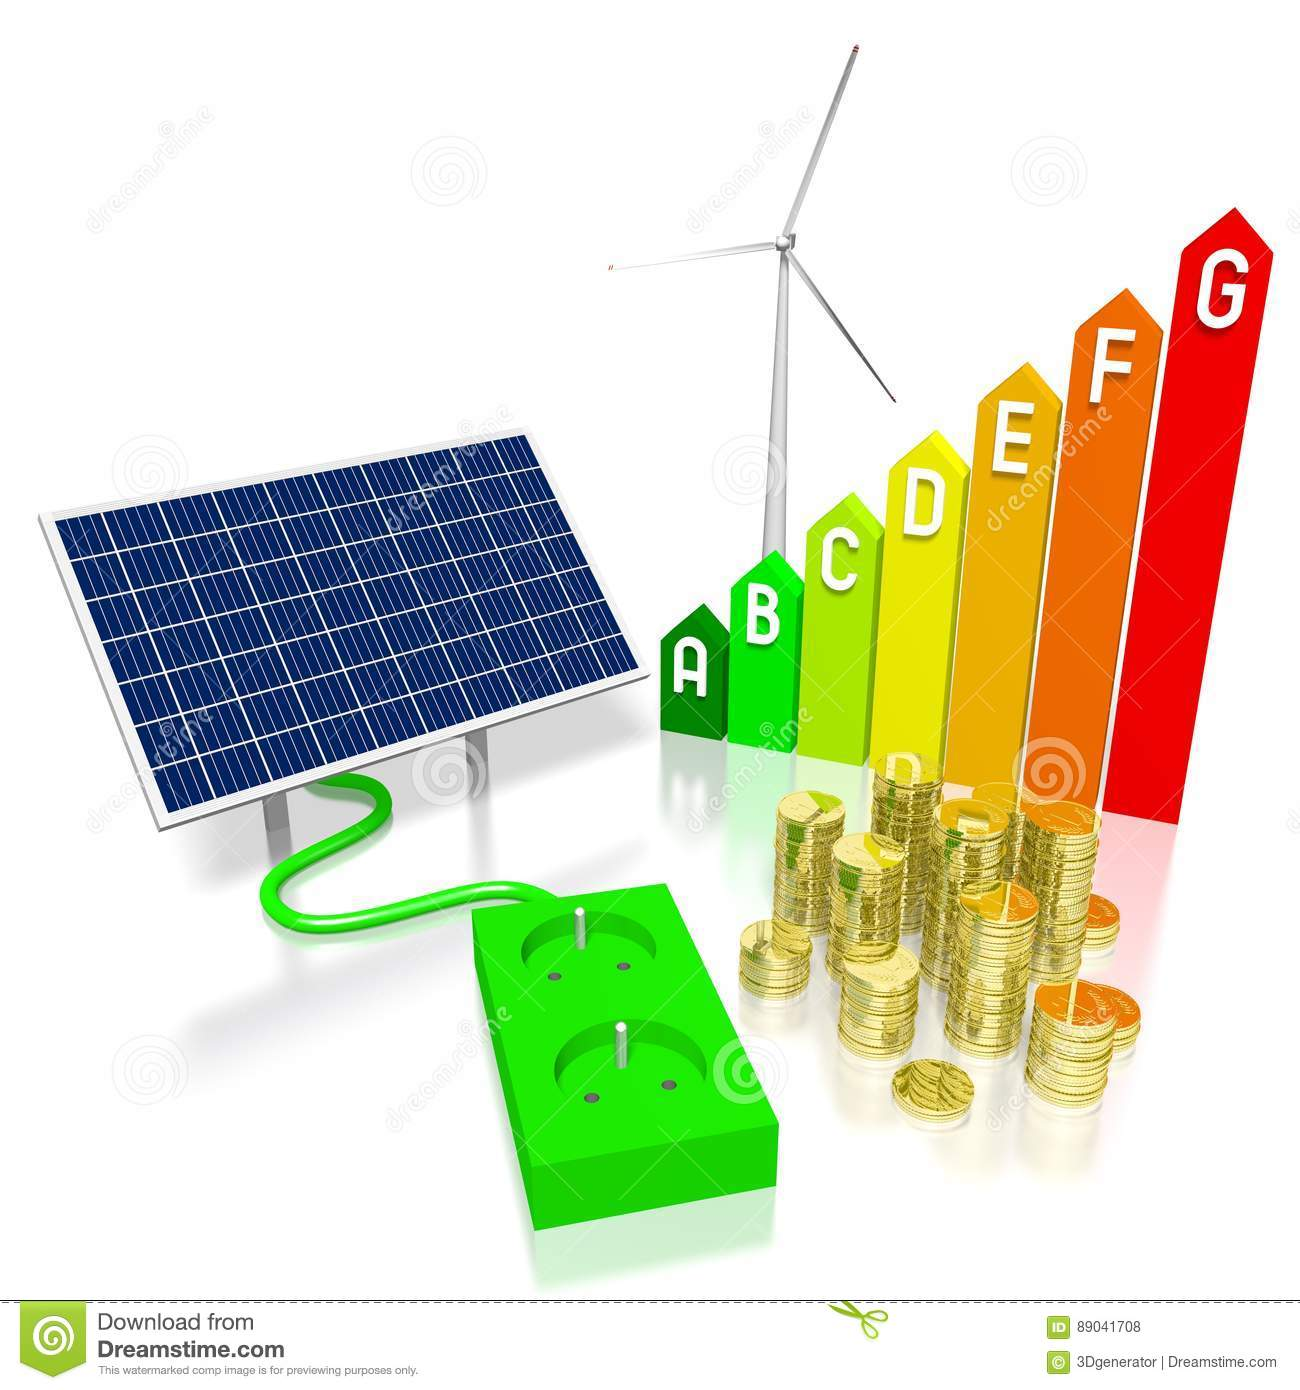 Renewable Energy Concept Stock Illustration Of Green Turbine Wind Generator Wiring Diagram 3d Graphics With Electrical Socket Solar Panel Coins Efficiency Chart Great For Topics Like Alternative Etc